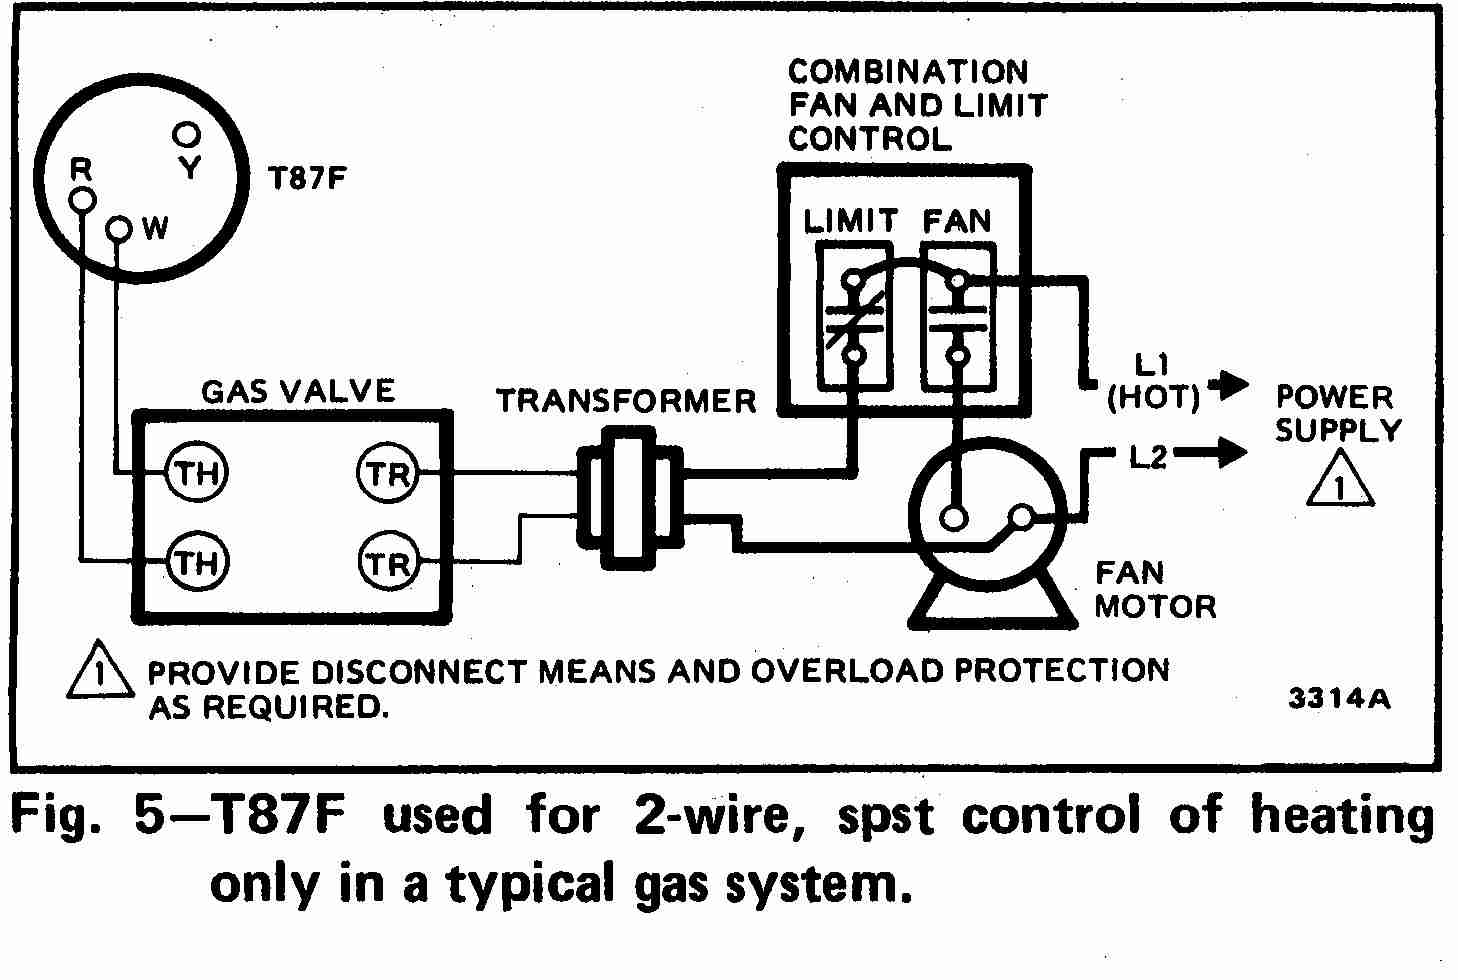 TT_T87F_0002_2Wg_DJF room thermostat wiring diagrams for hvac systems typical thermostat wiring diagram at reclaimingppi.co